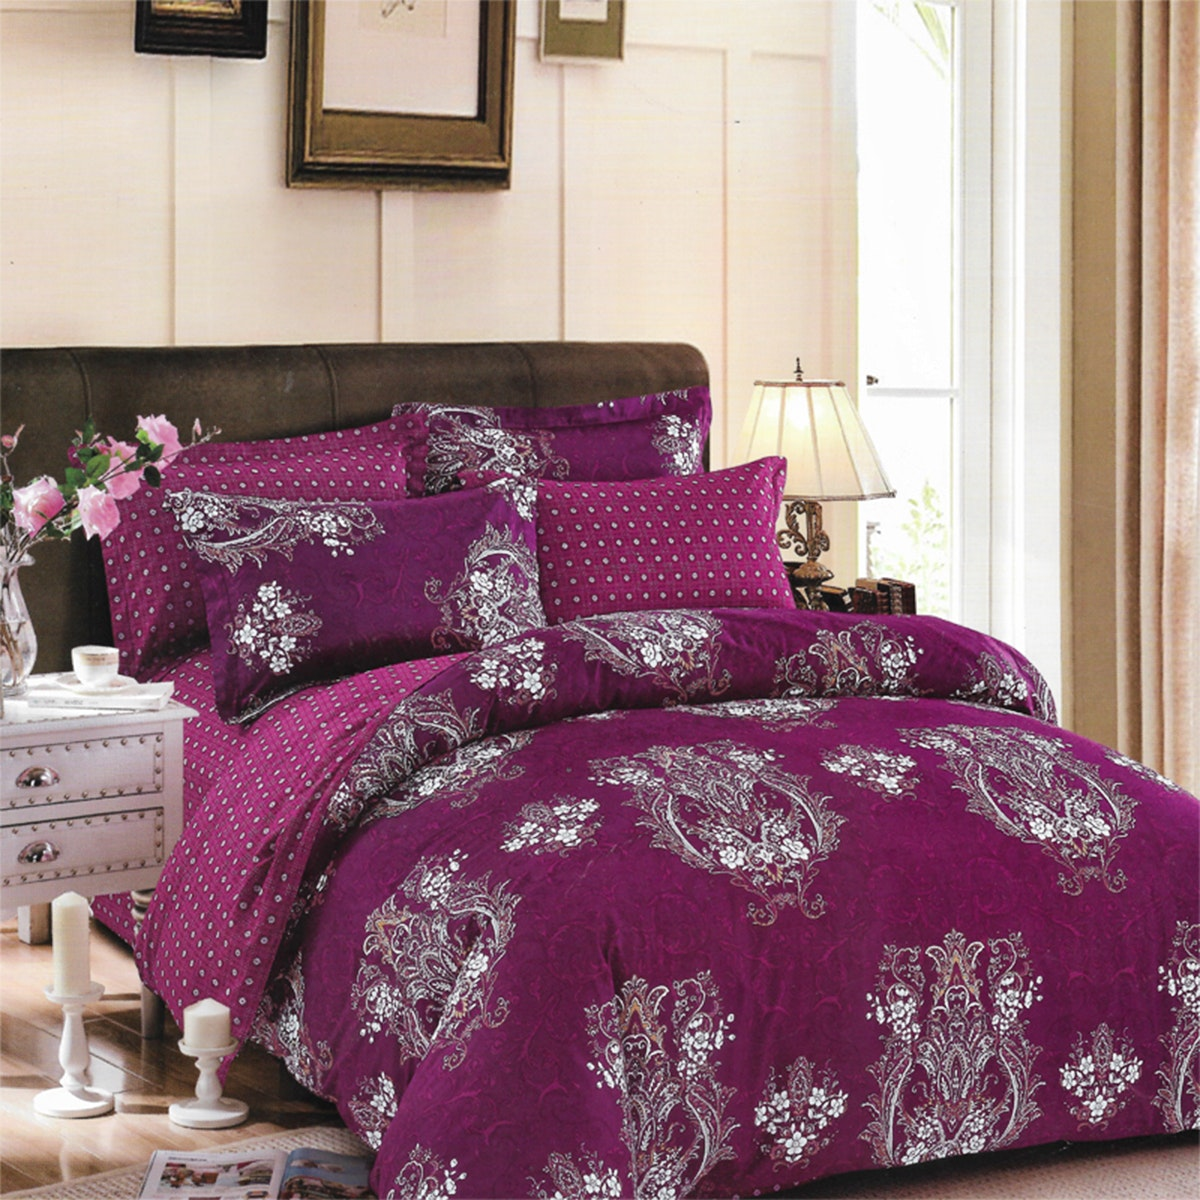 Sleep Buddy Set Sprei Dark Purple Carve Cotton Sateen 160x200x30